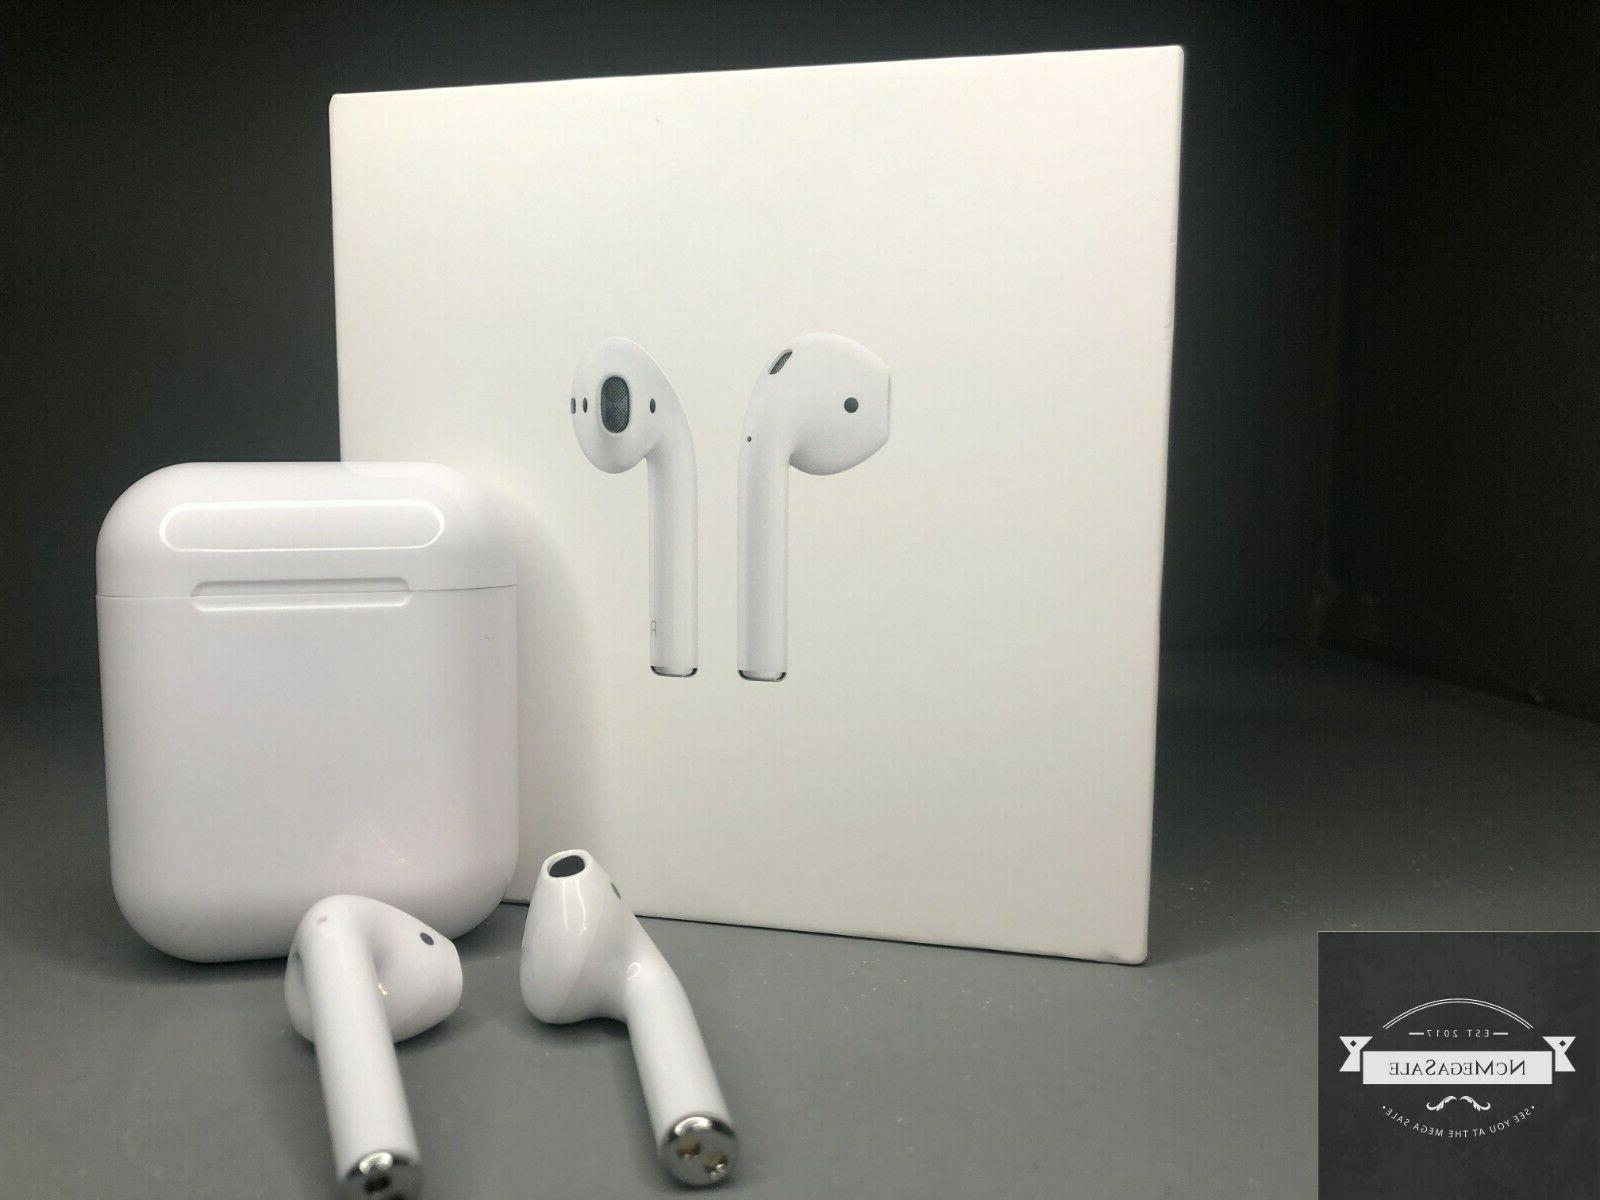 new auto pairing airpods style wireless earbuds